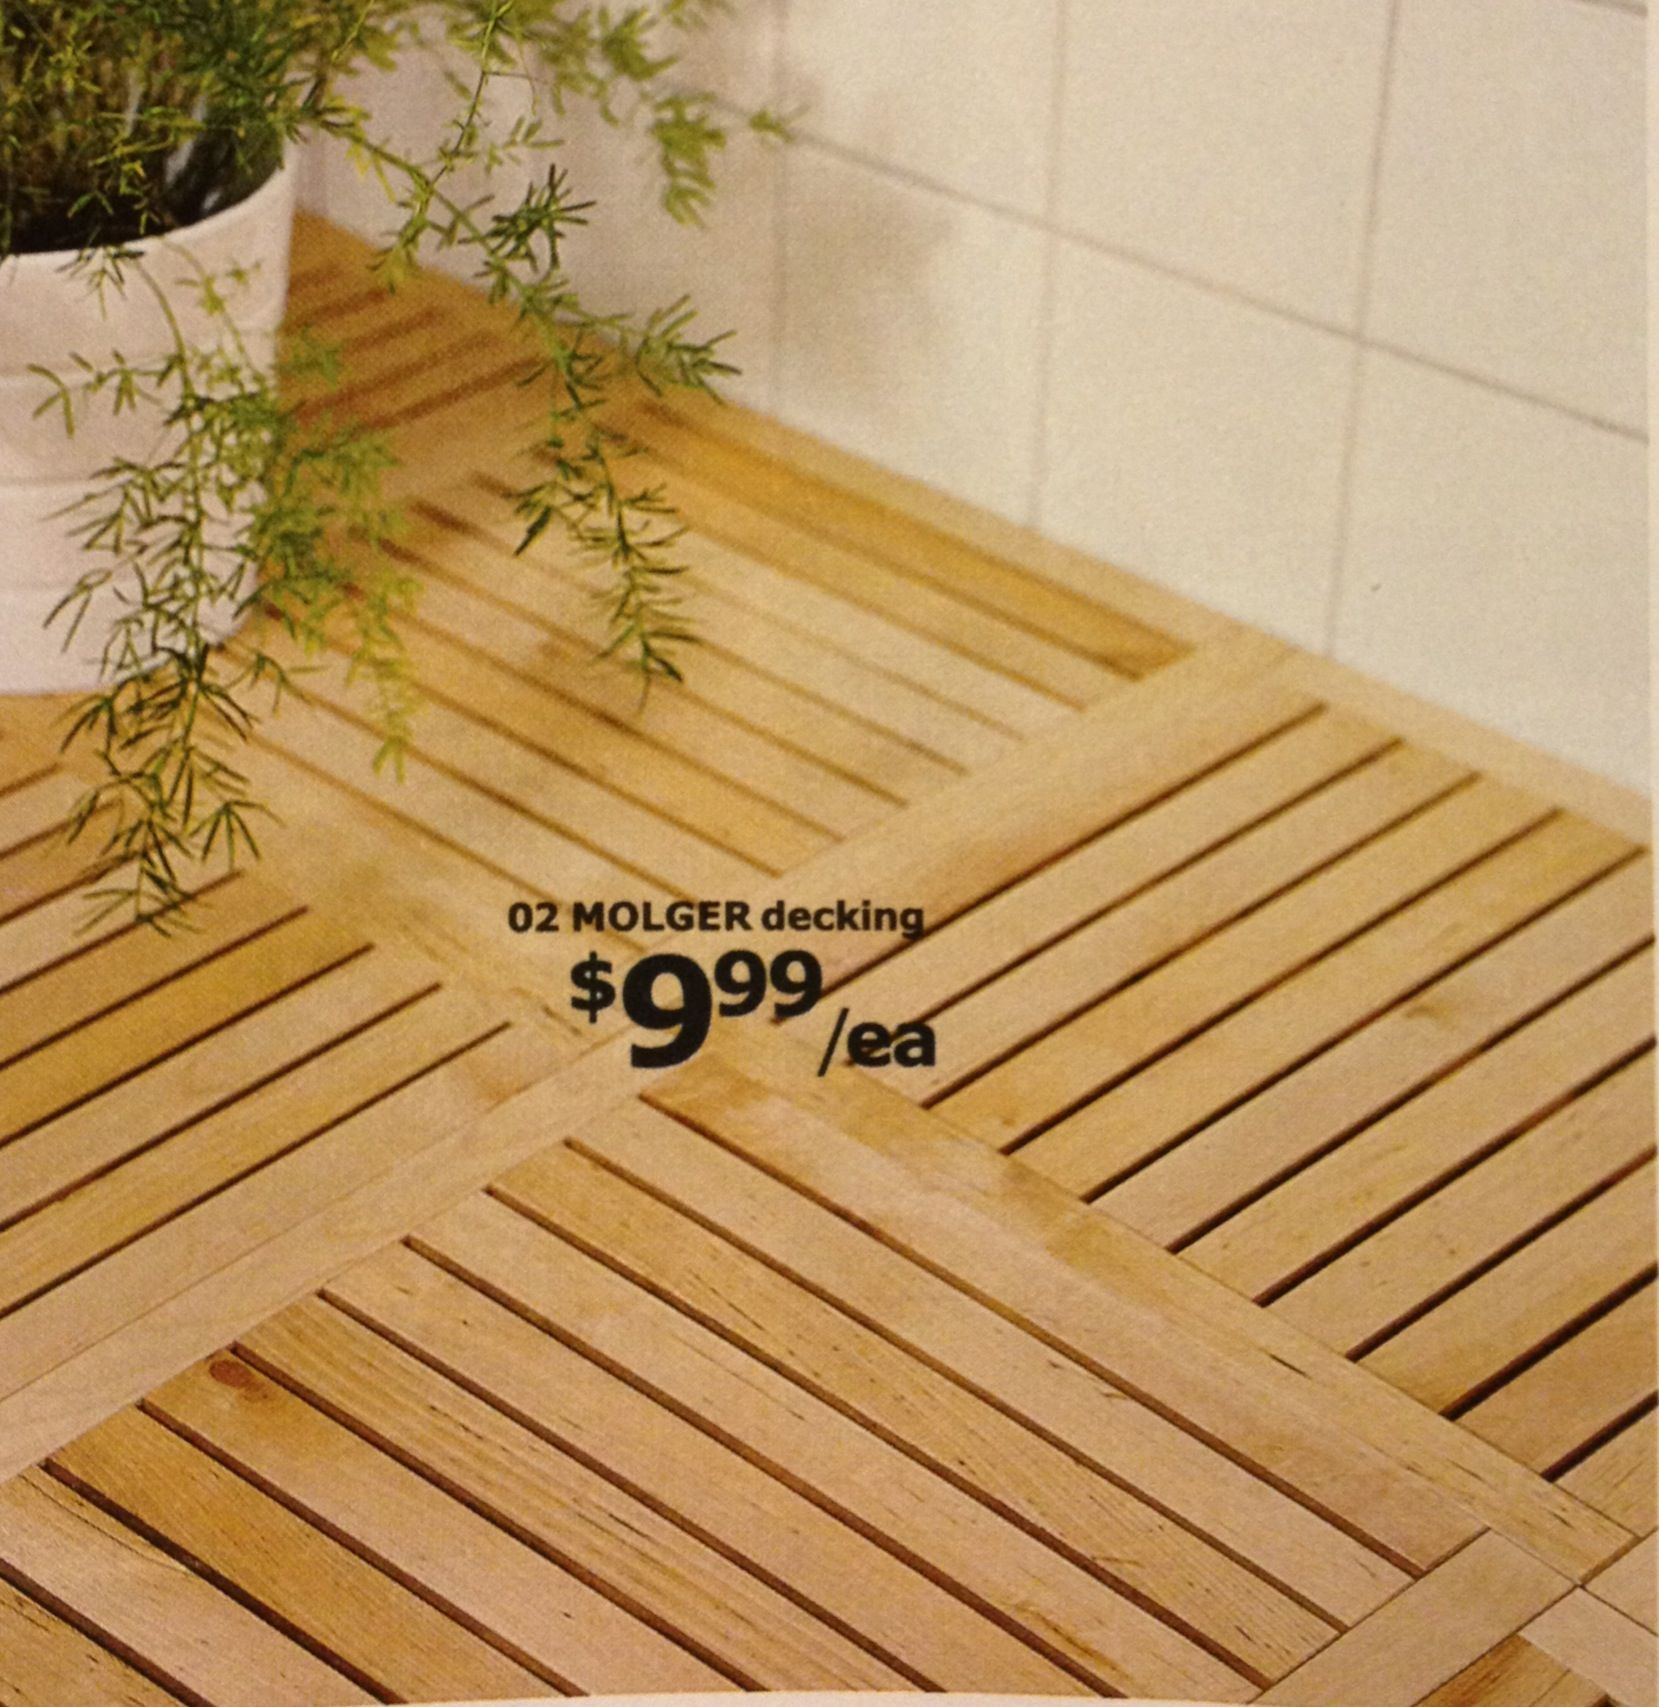 Superb Molger Decking, Shown In IKEA Catalog As Flooring In A Bath. Easy To Lay